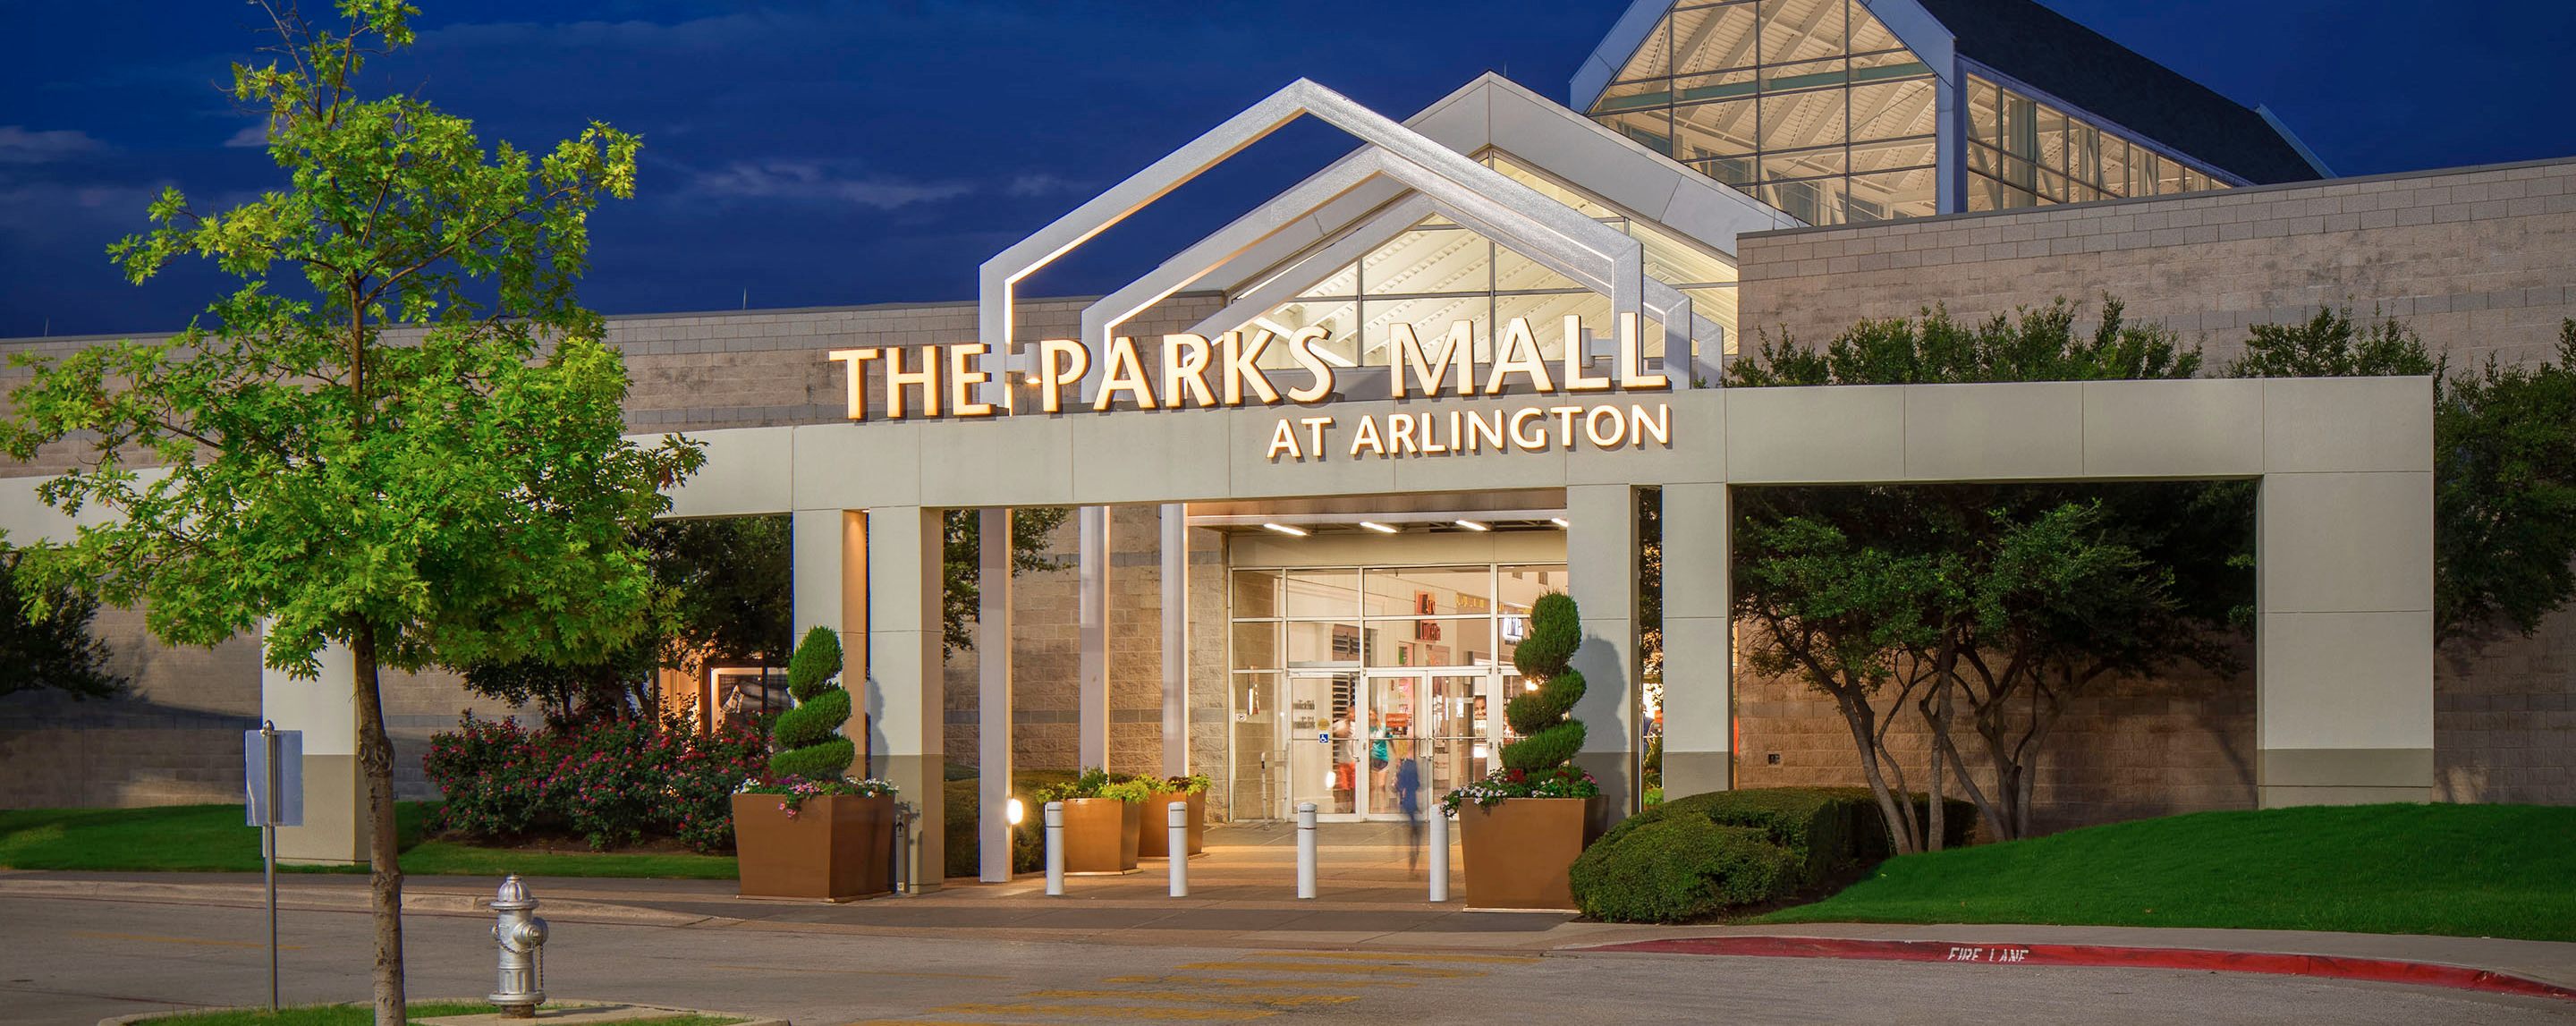 The Parks Mall at Arlington image 0